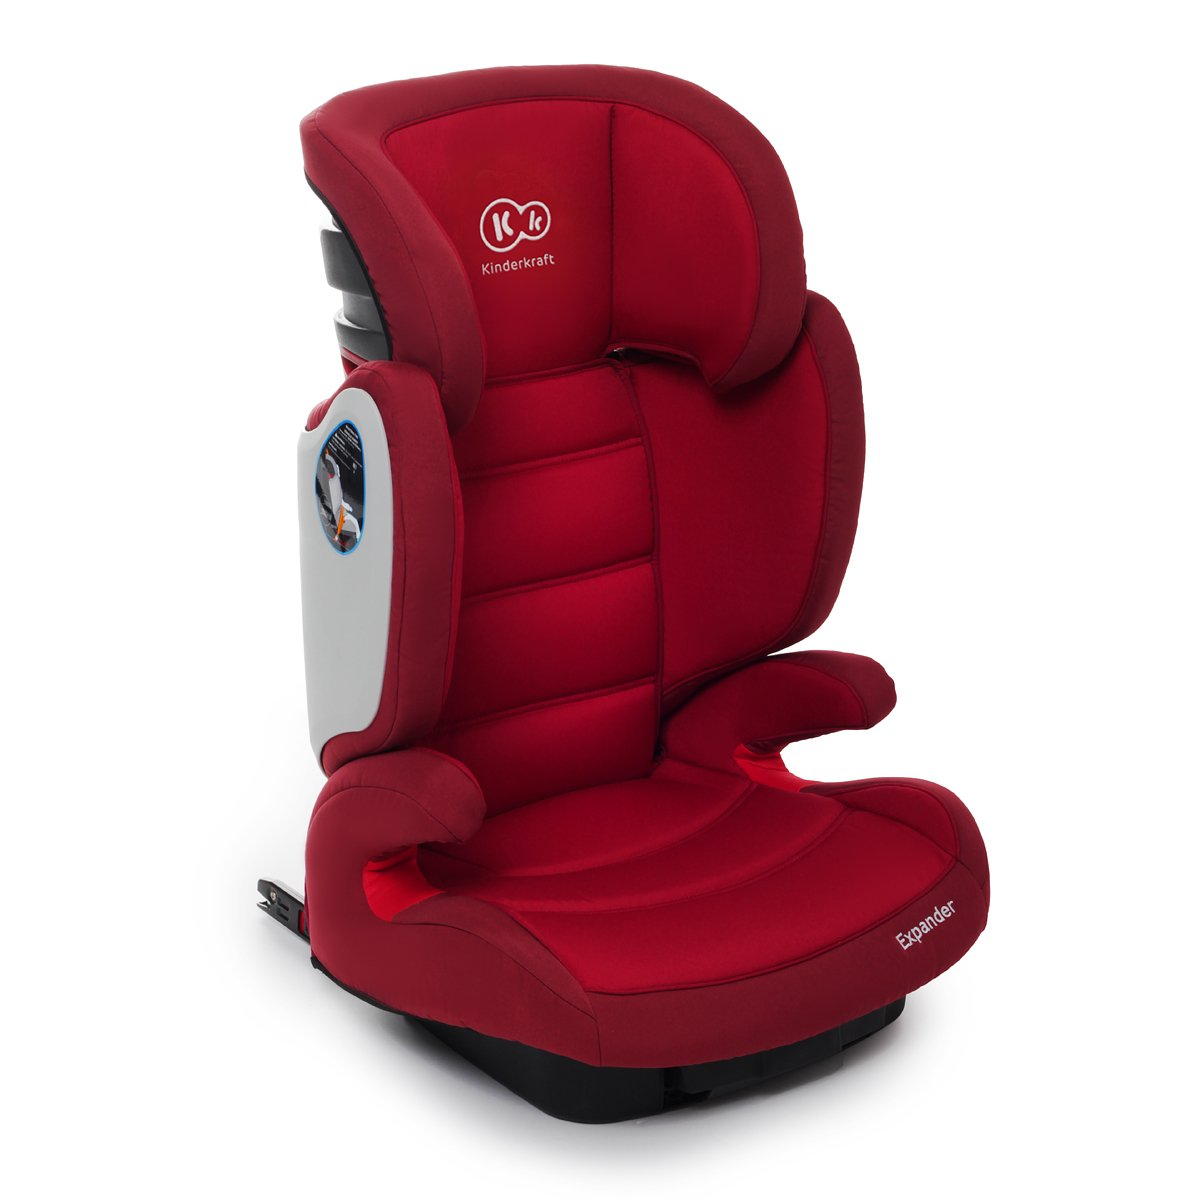 677d307dadc Kinderkraft Expander Booster Isofix Car Seat (Group 2 3